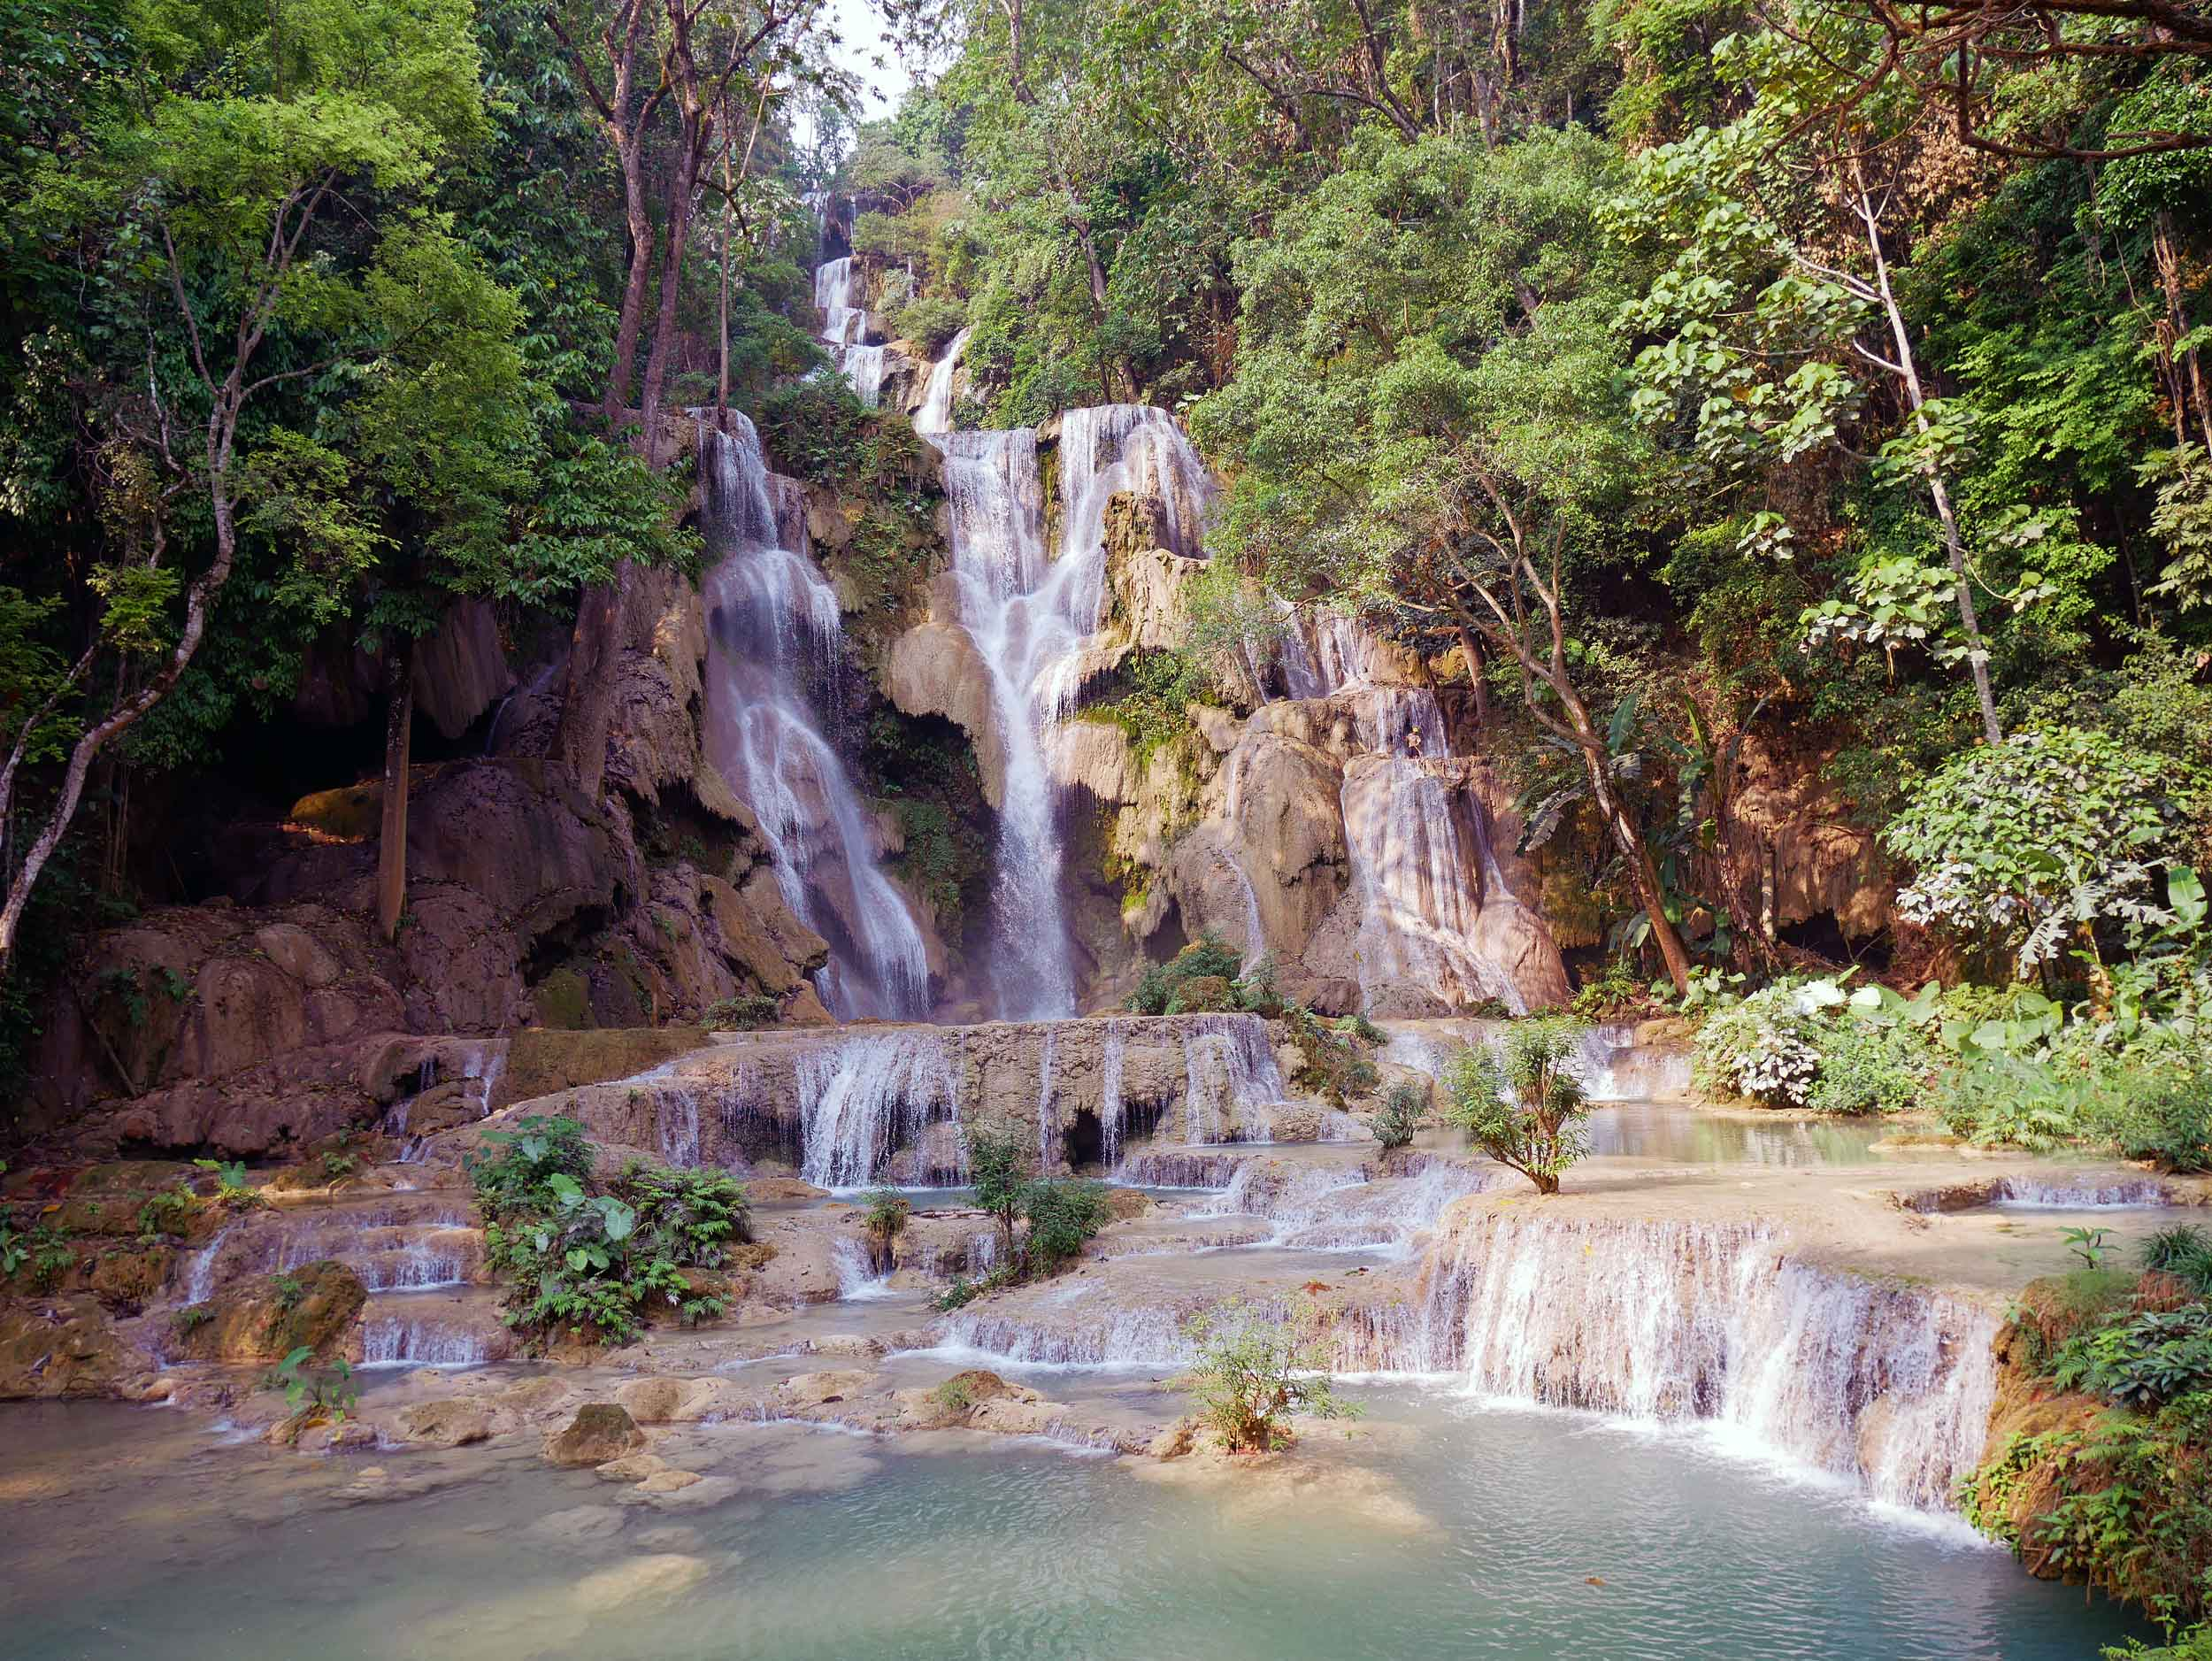 An early morning walk brought us to multi-tiered Kuang Si Falls, falling 60 metres from large pools at the top (April 5).